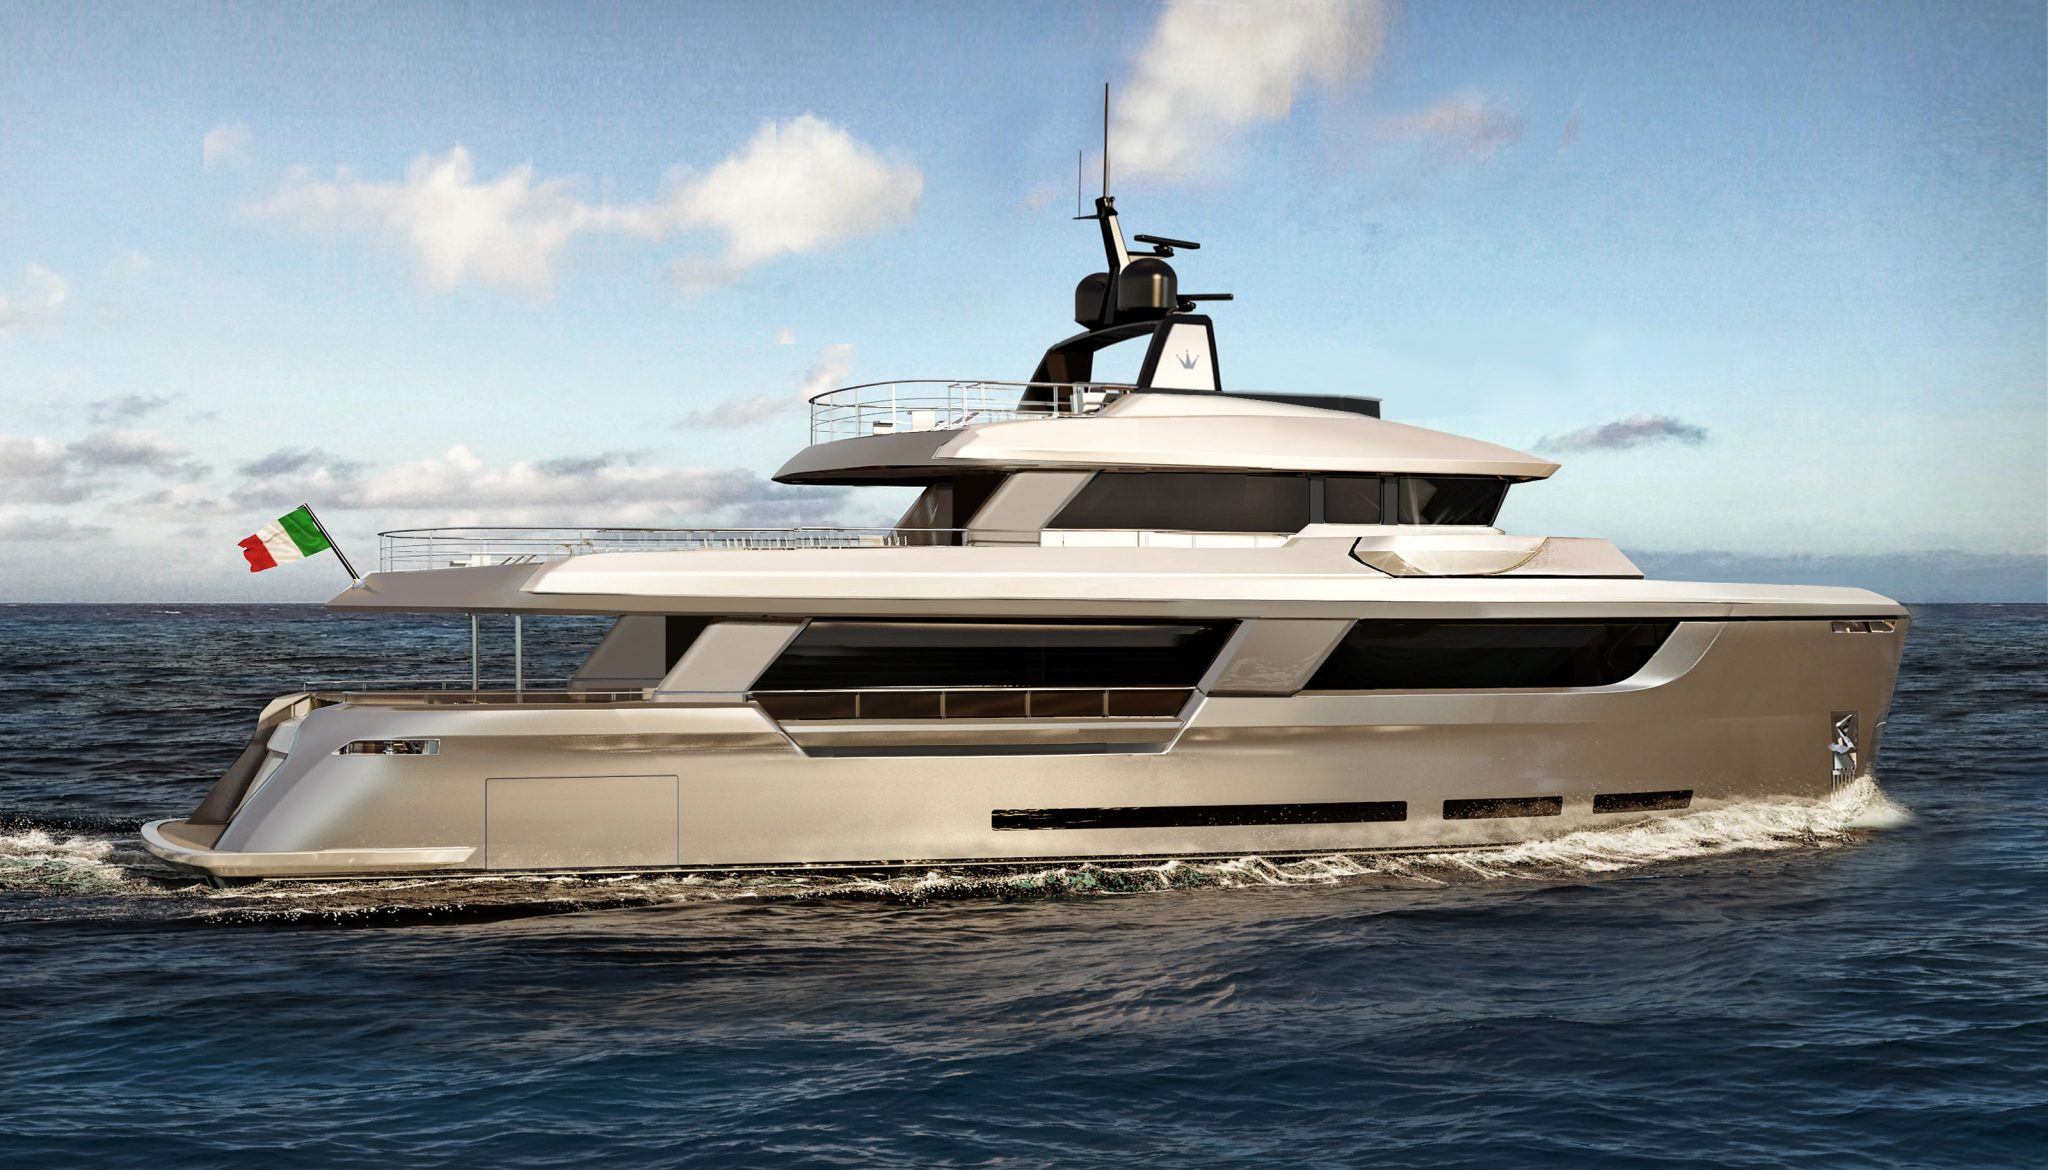 Ocean King classic Explorer 108 R l Exterior Design Yacht Aft and Side Render